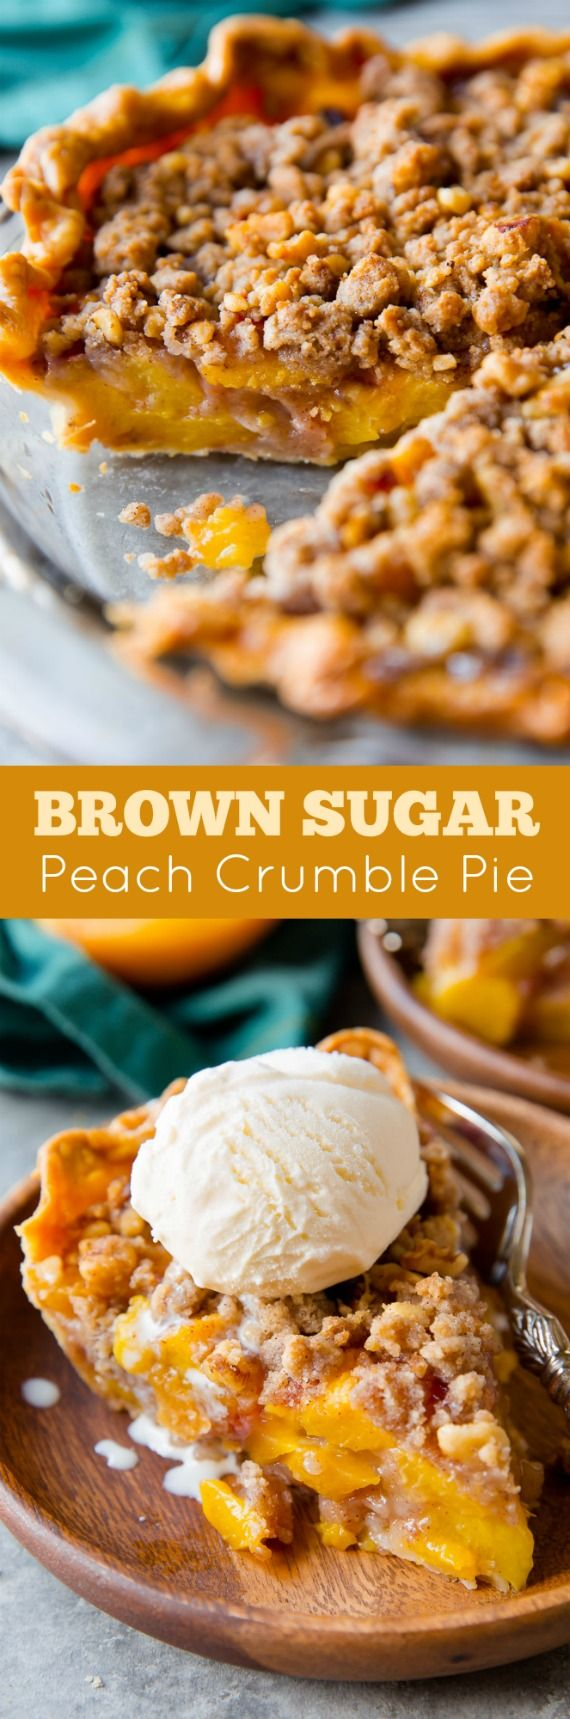 ***Brown Sugar Peach Crumble Pie ~ with brown sugar and cinnamon, this peach crumble pie is my favorite. The filling holds its shape and the crust is buttery and flaky!